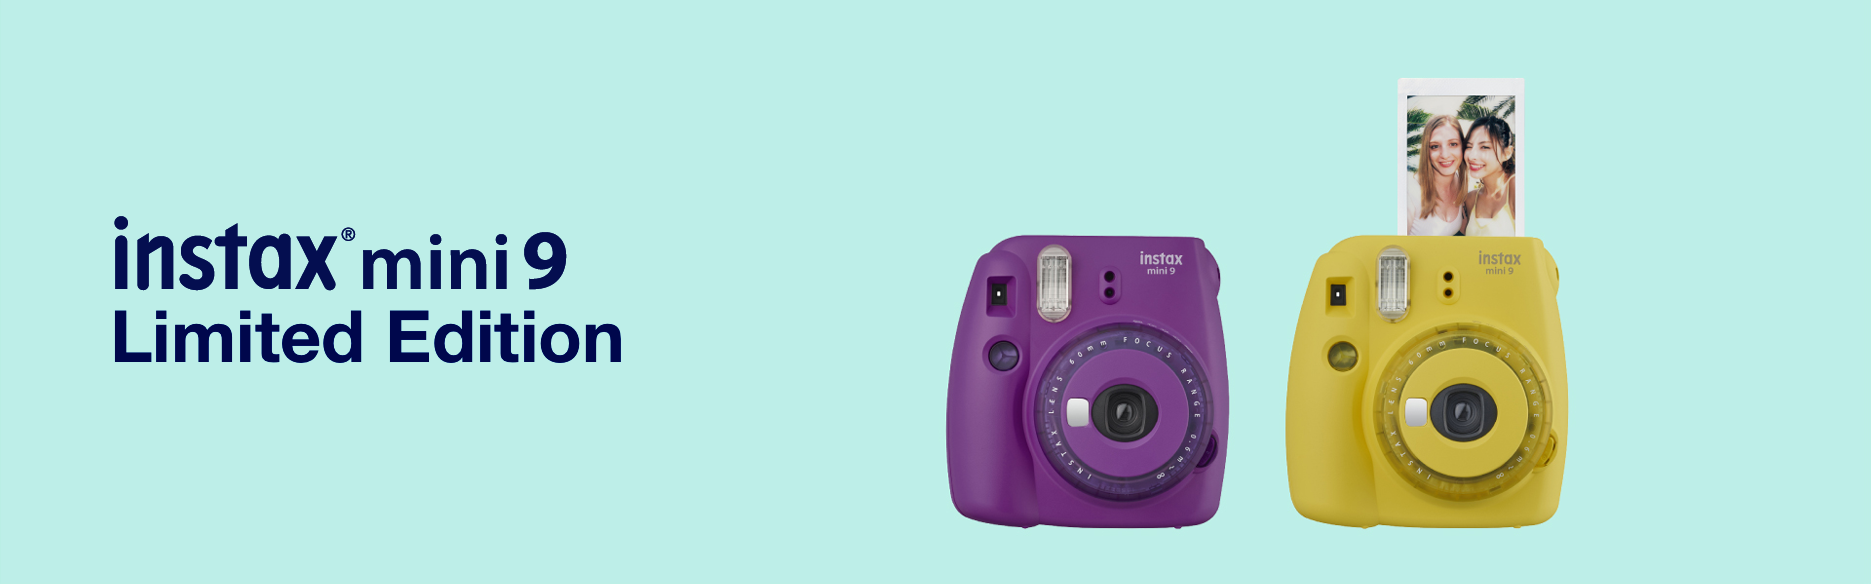 Baby blue hero image with purple and yellow mini 9 limited edition camera